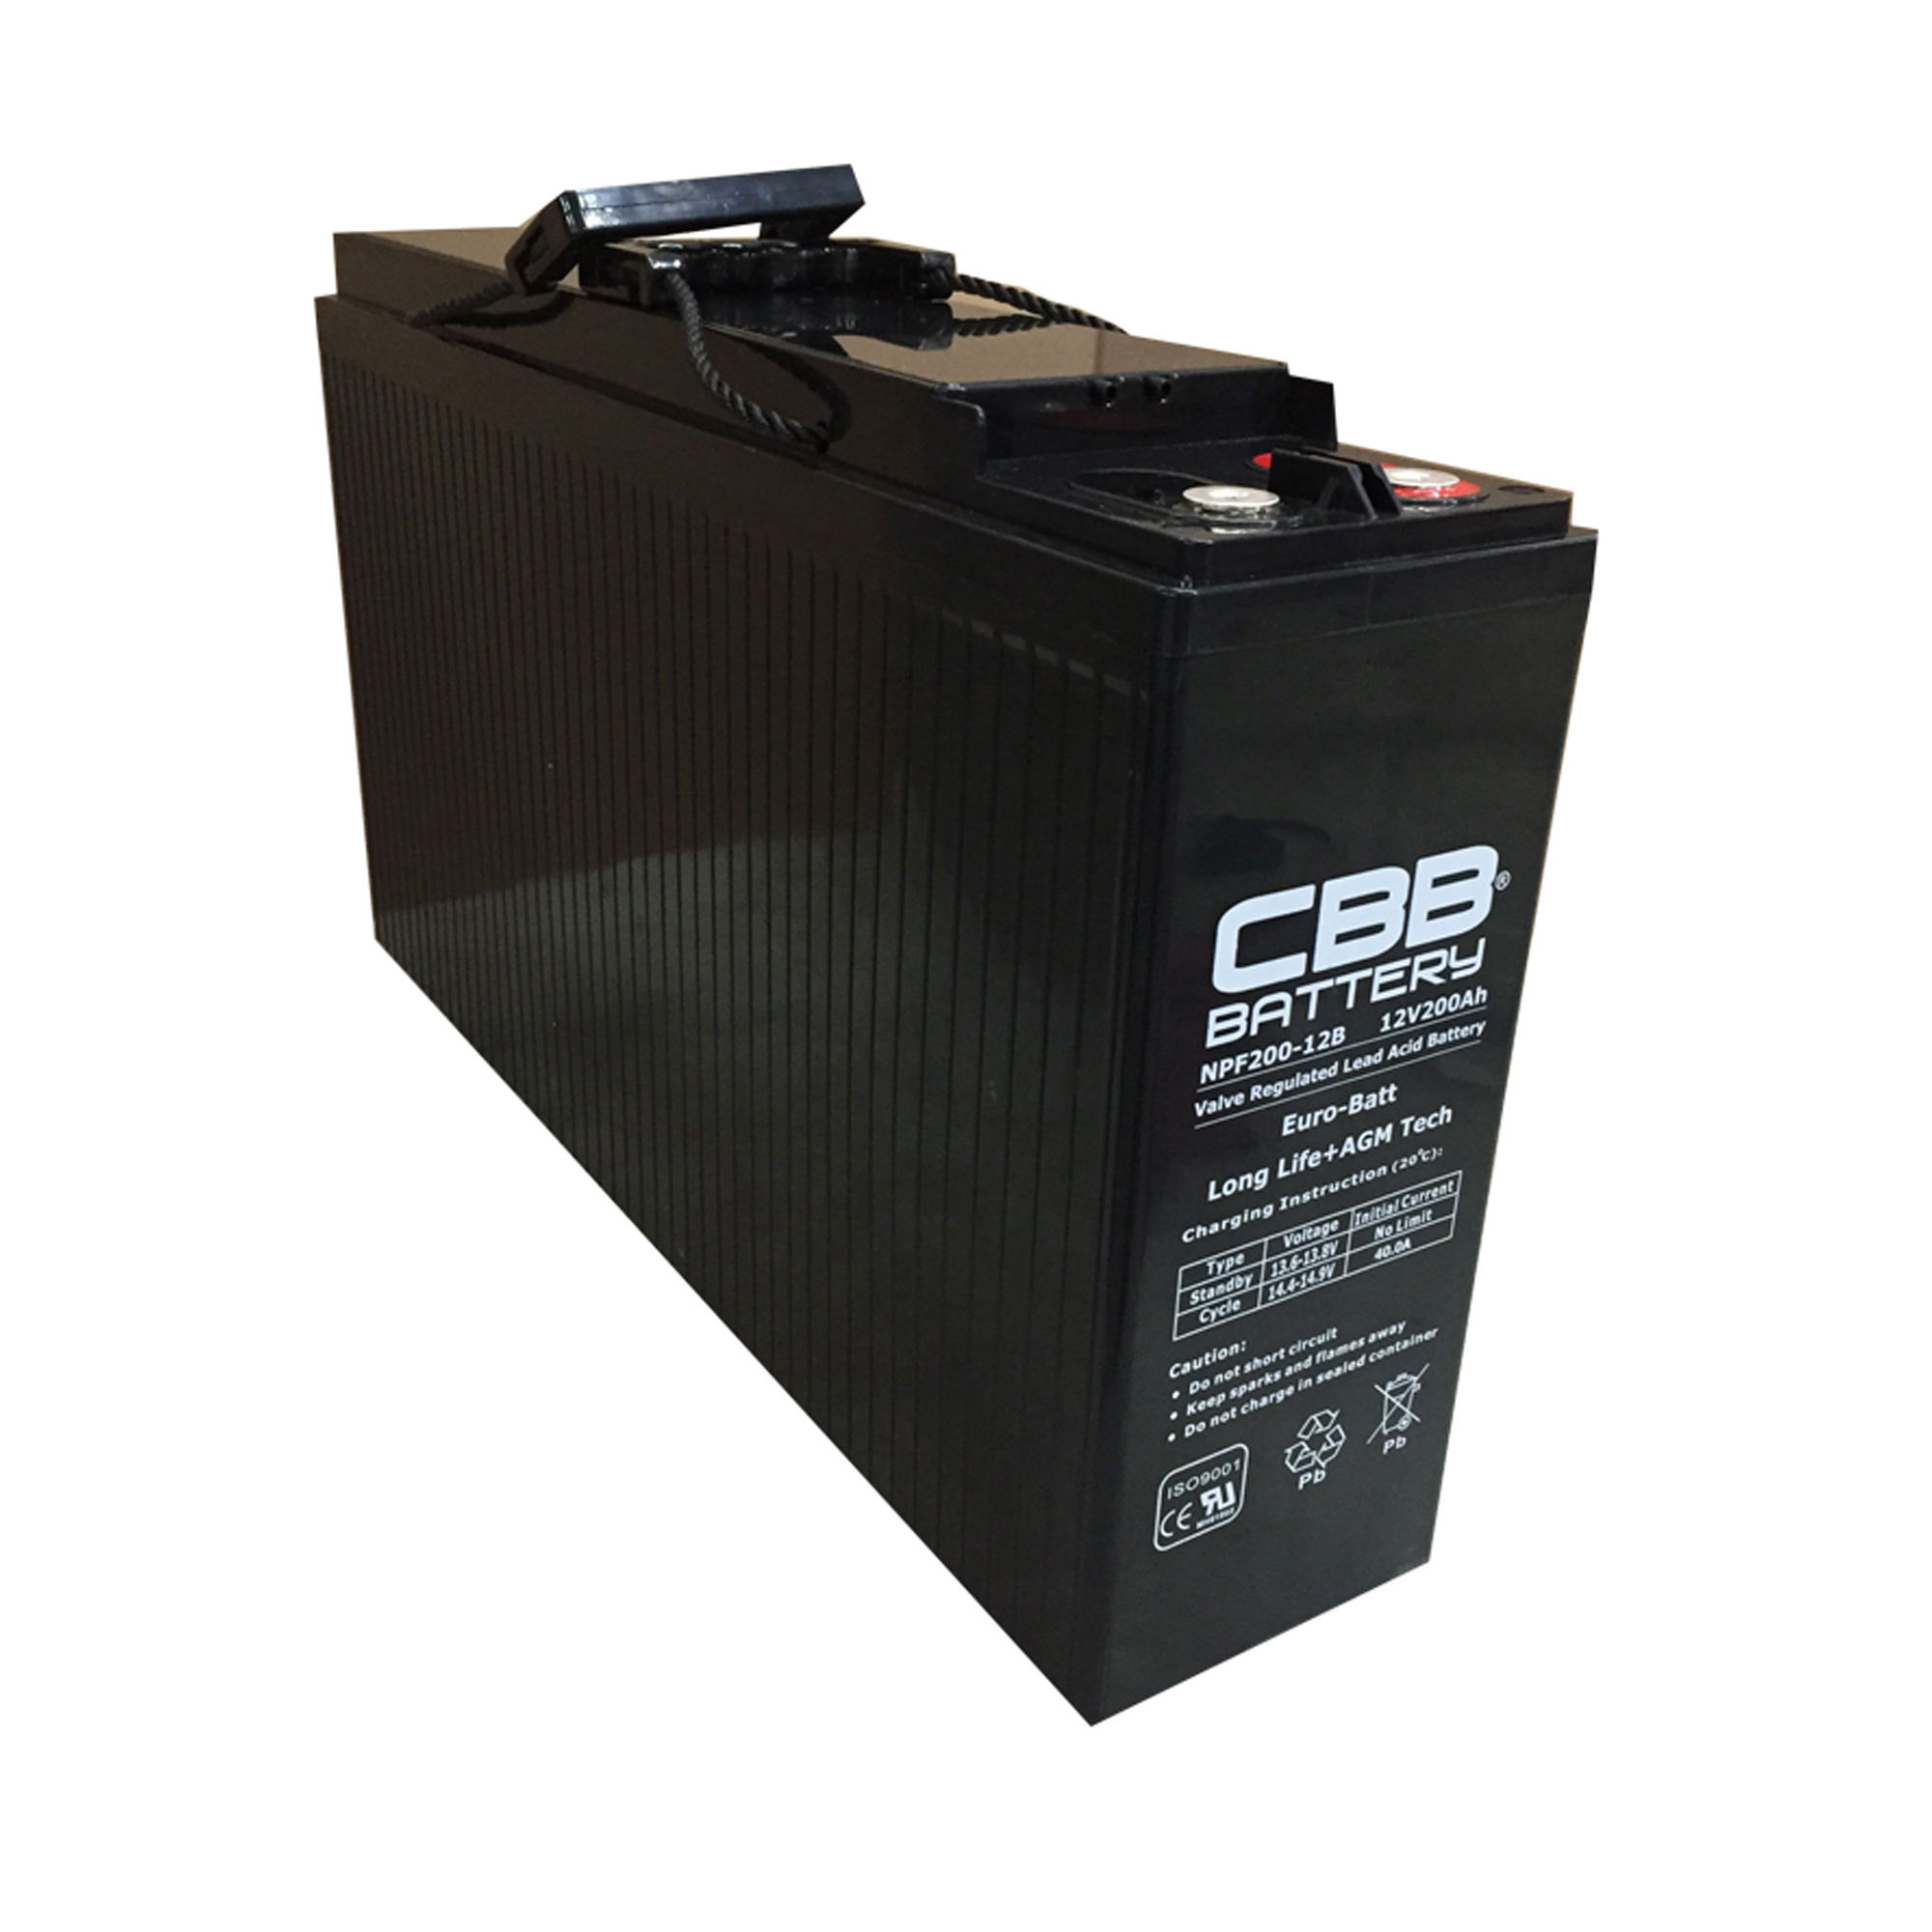 Deep Cycle Battery 12V 200AH Front Terminal AGM Battery For Wind Turbines